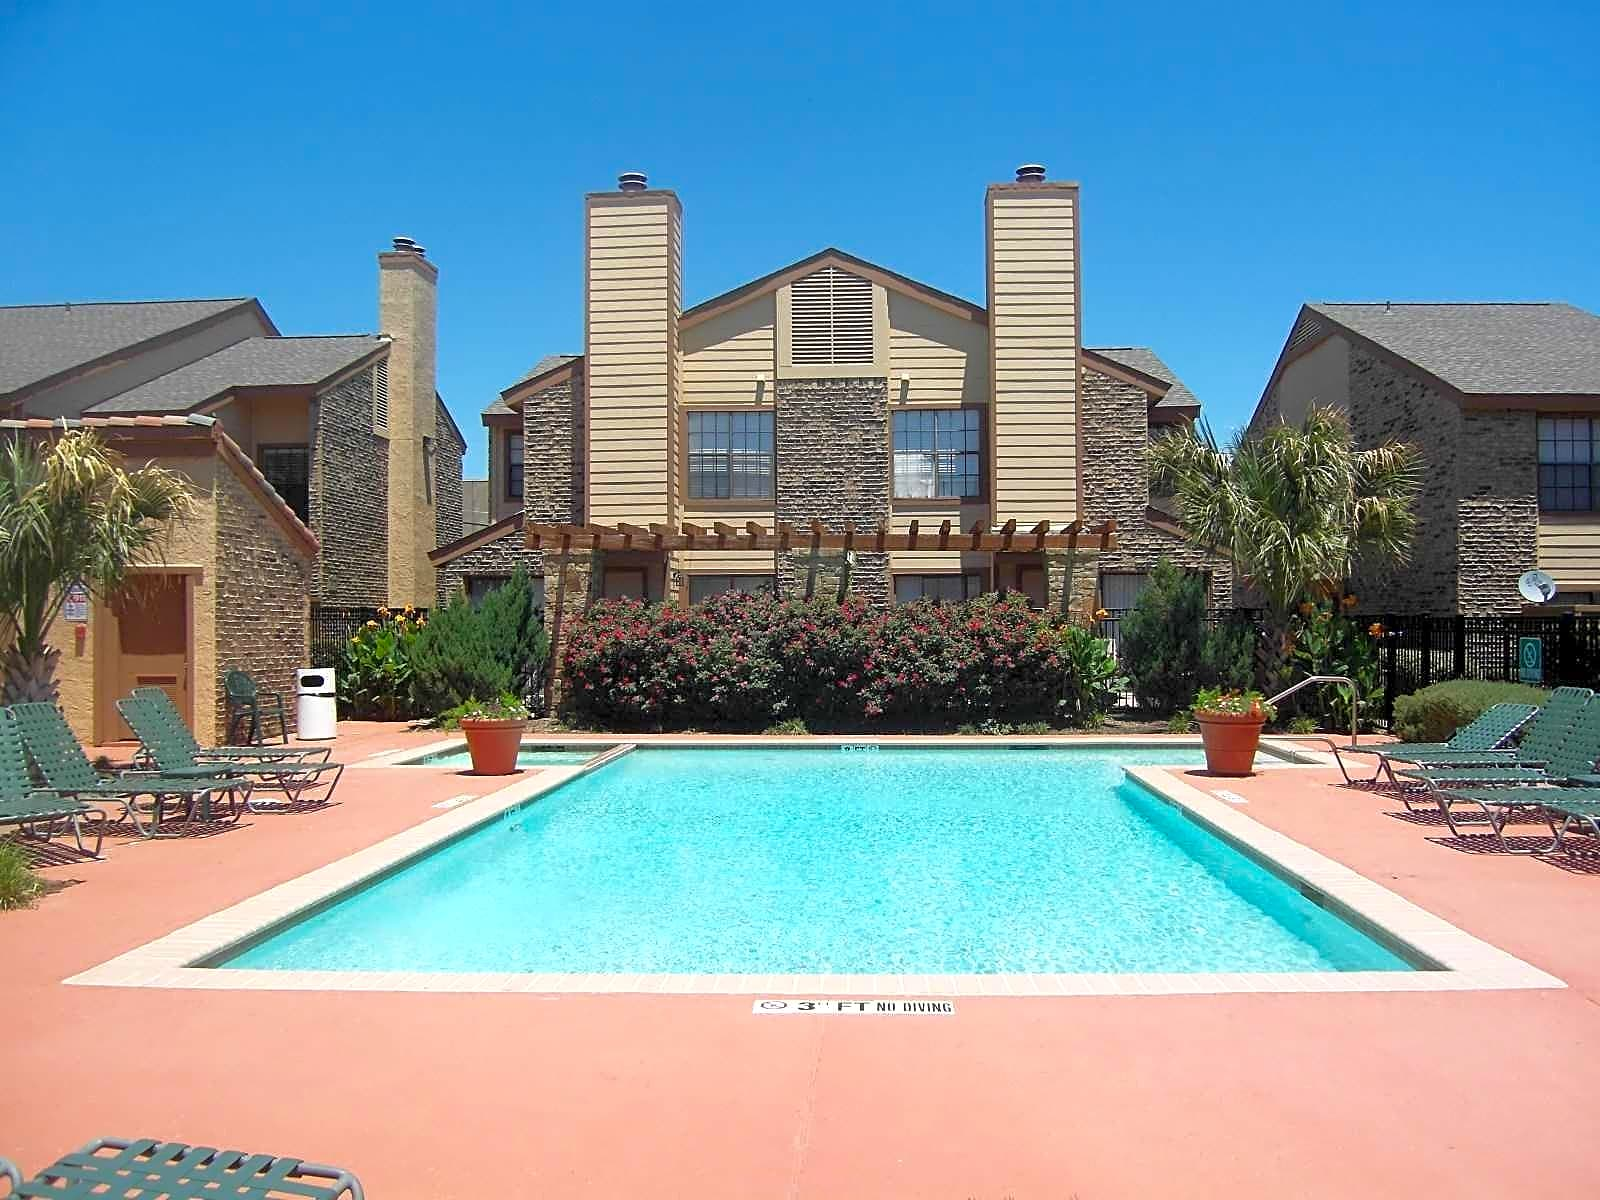 West Plano Apartments Townhomes